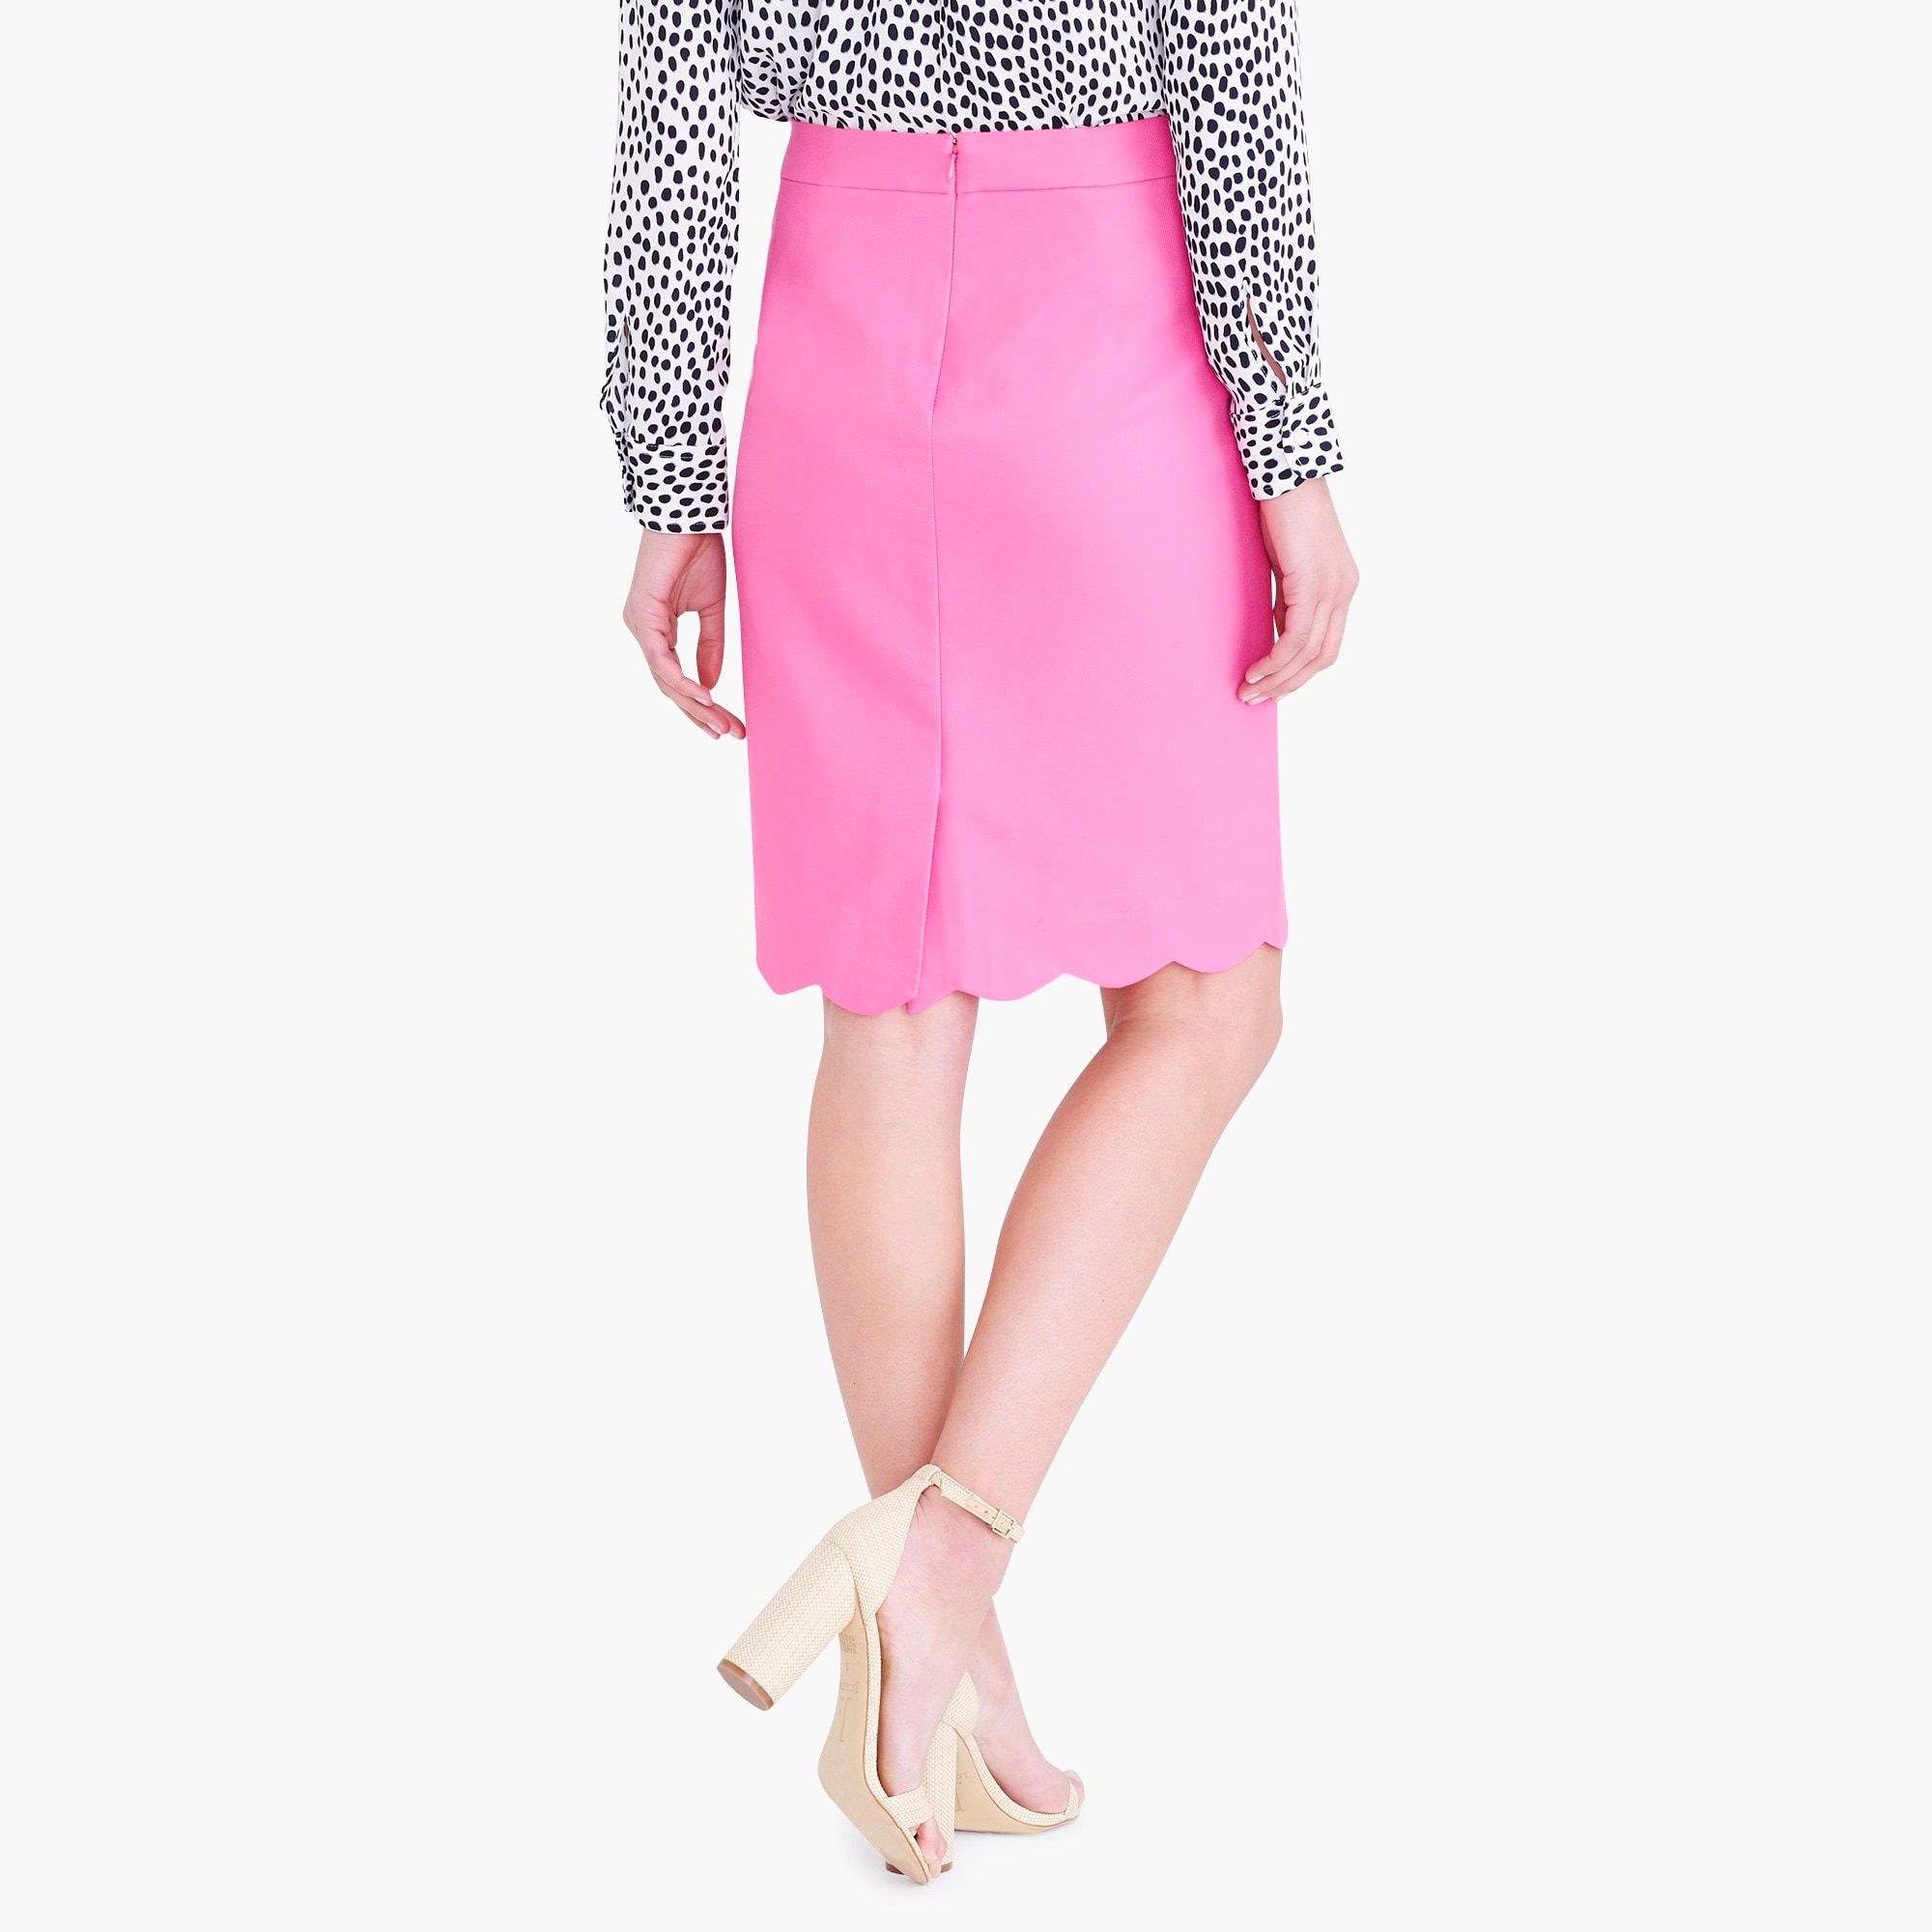 Image 3 for Scalloped pencil skirt